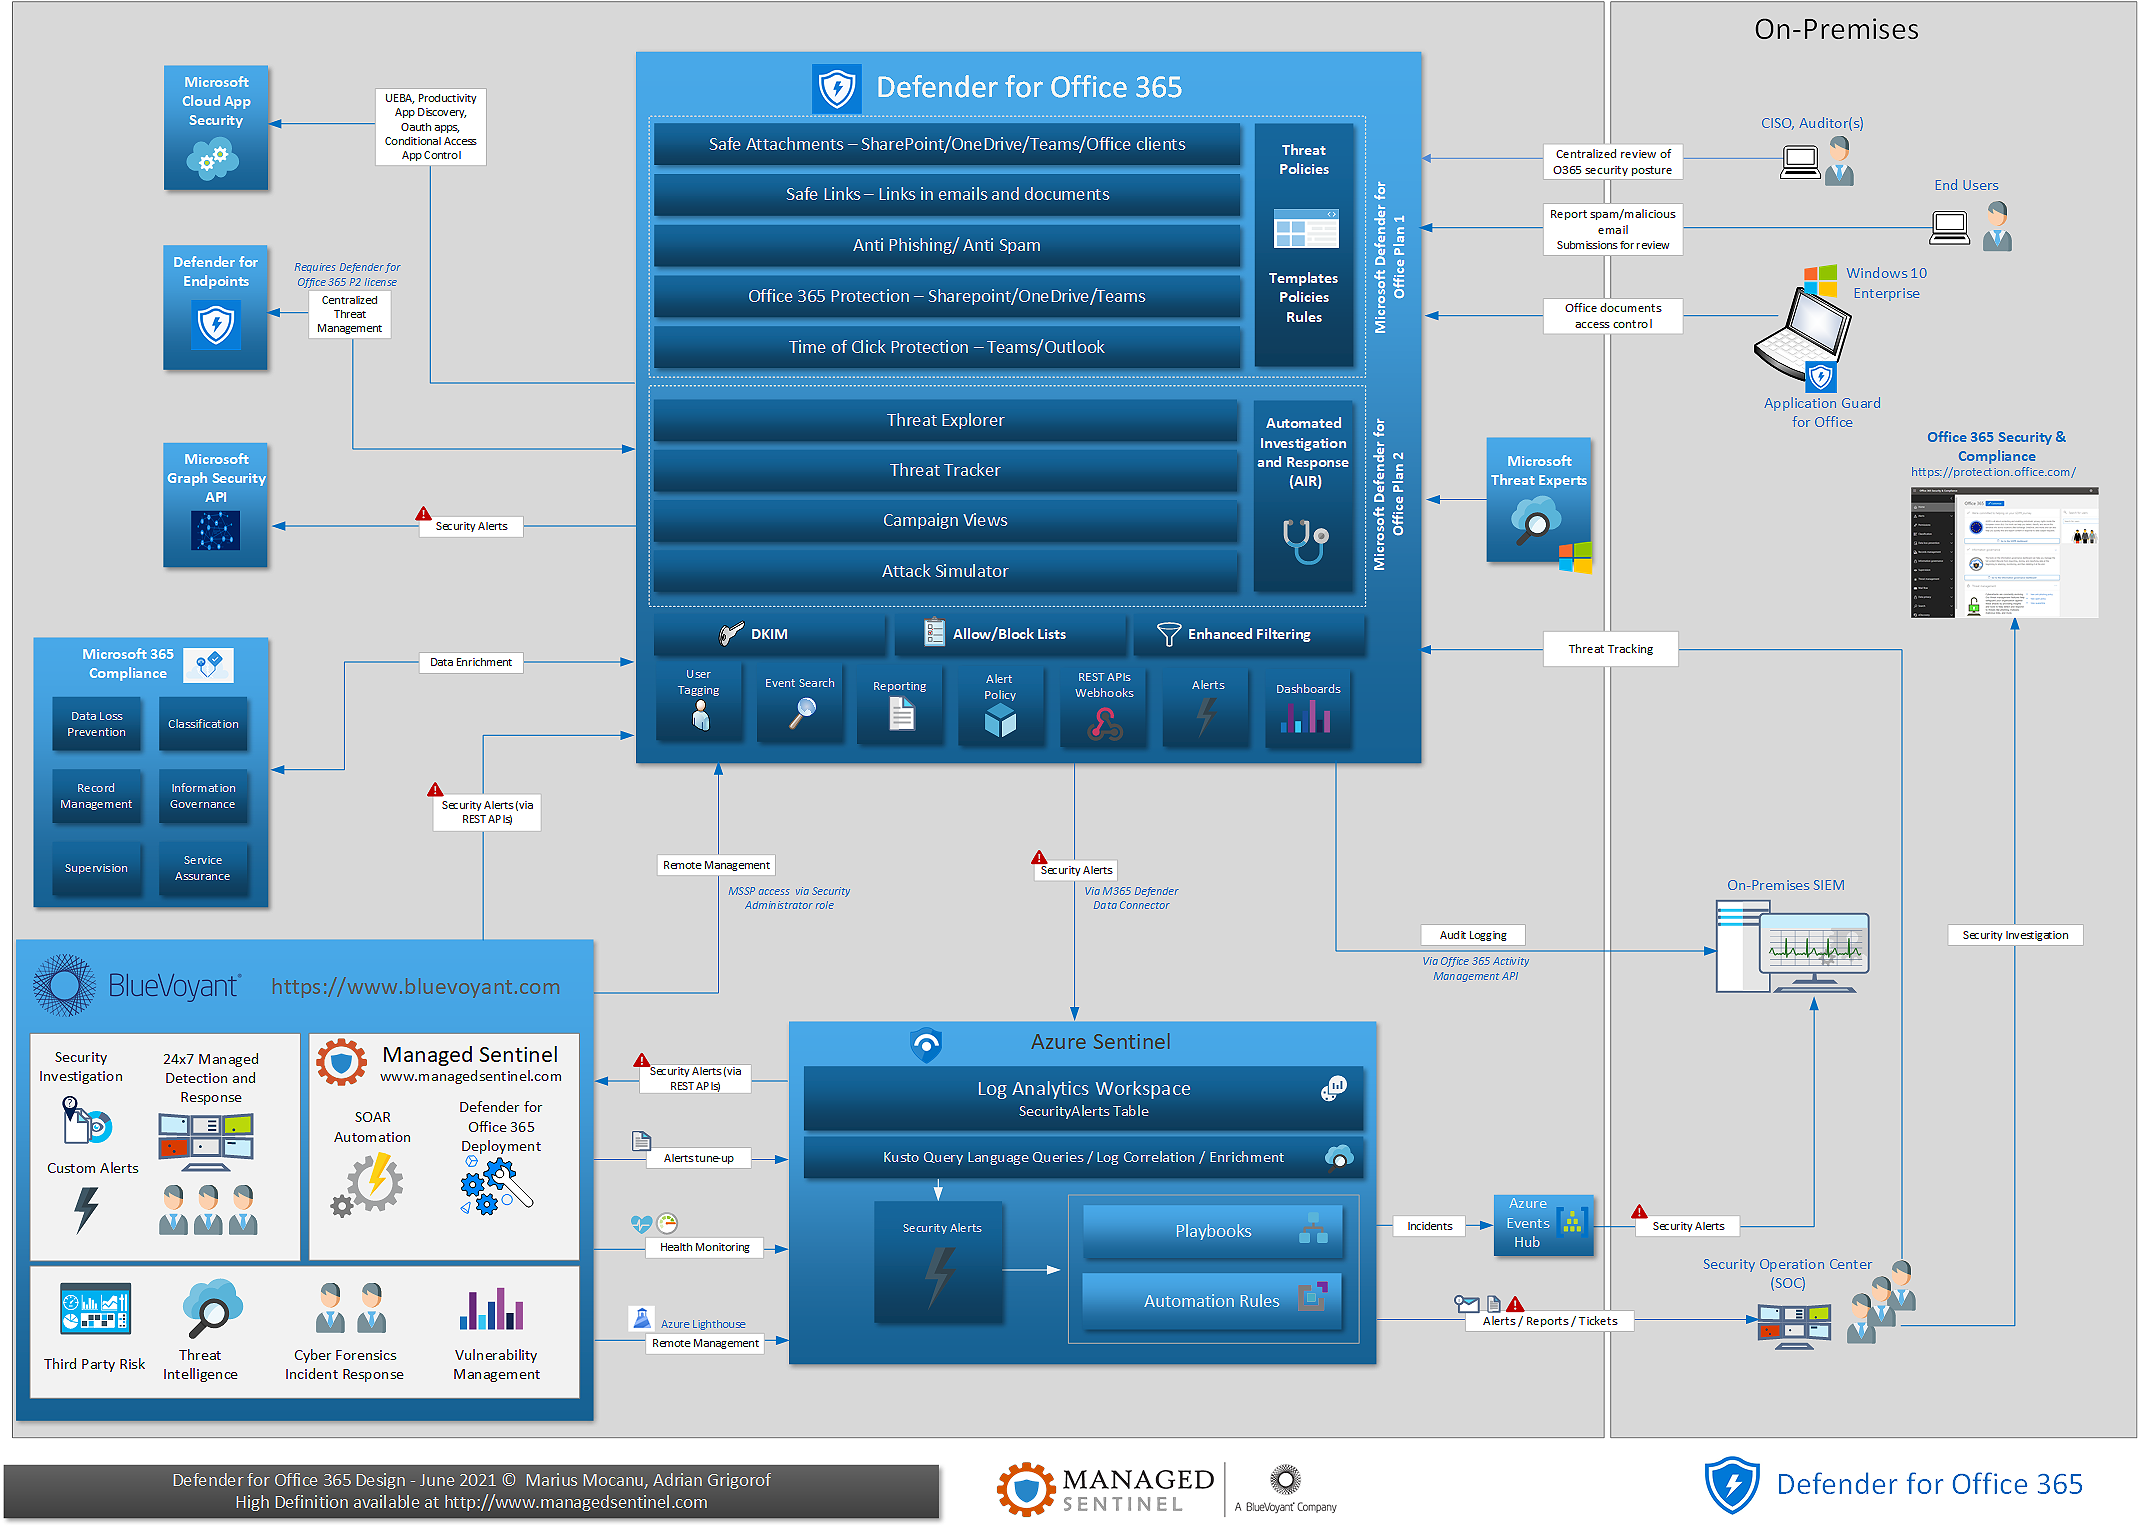 Microsoft Defender for Office 365 – One Page Diagram